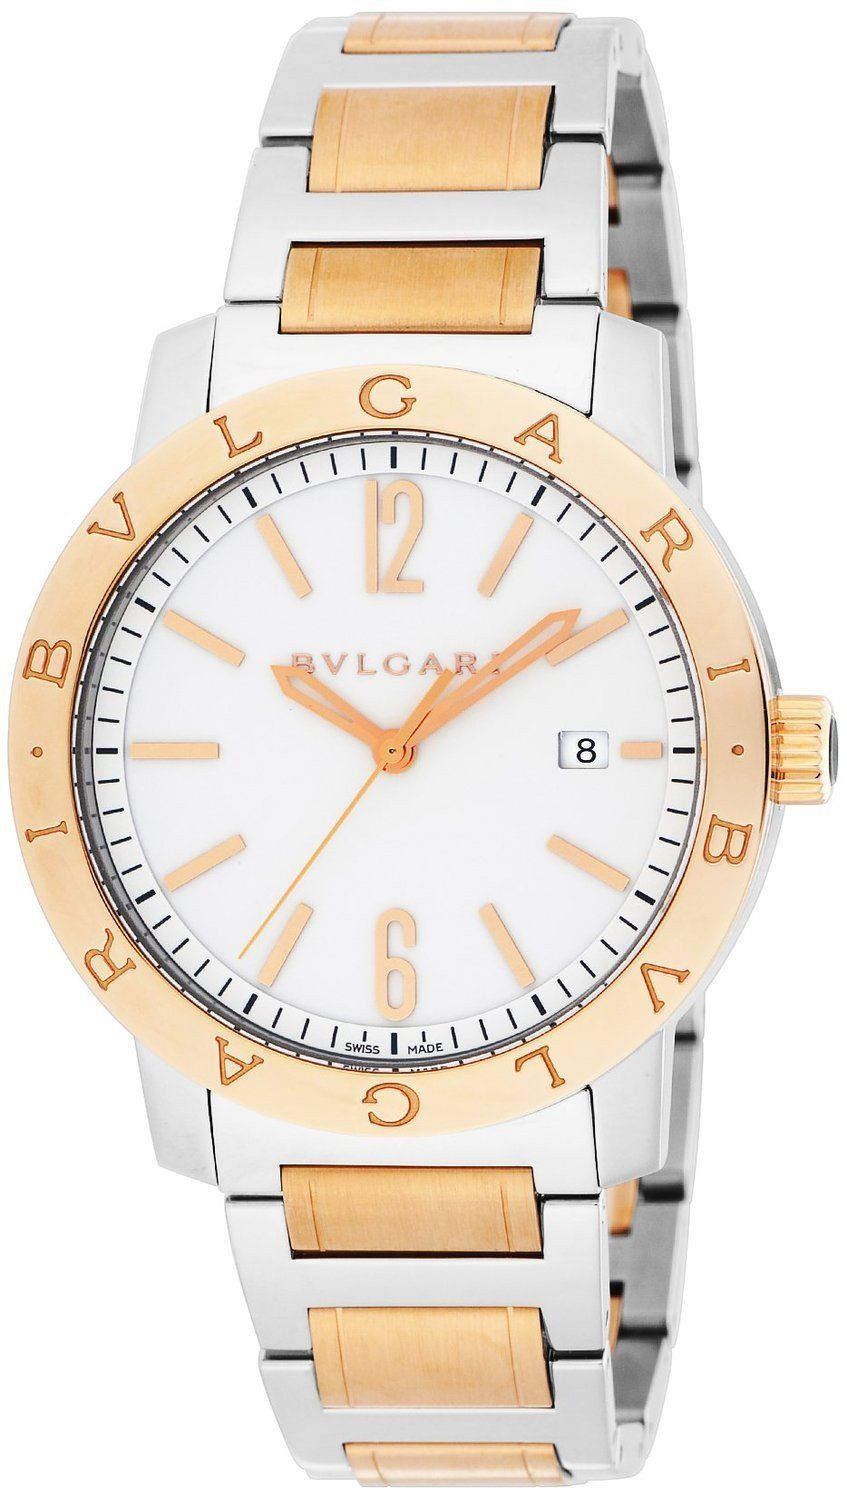 Bvlgari white dial automatic winding kpg stainless steel case